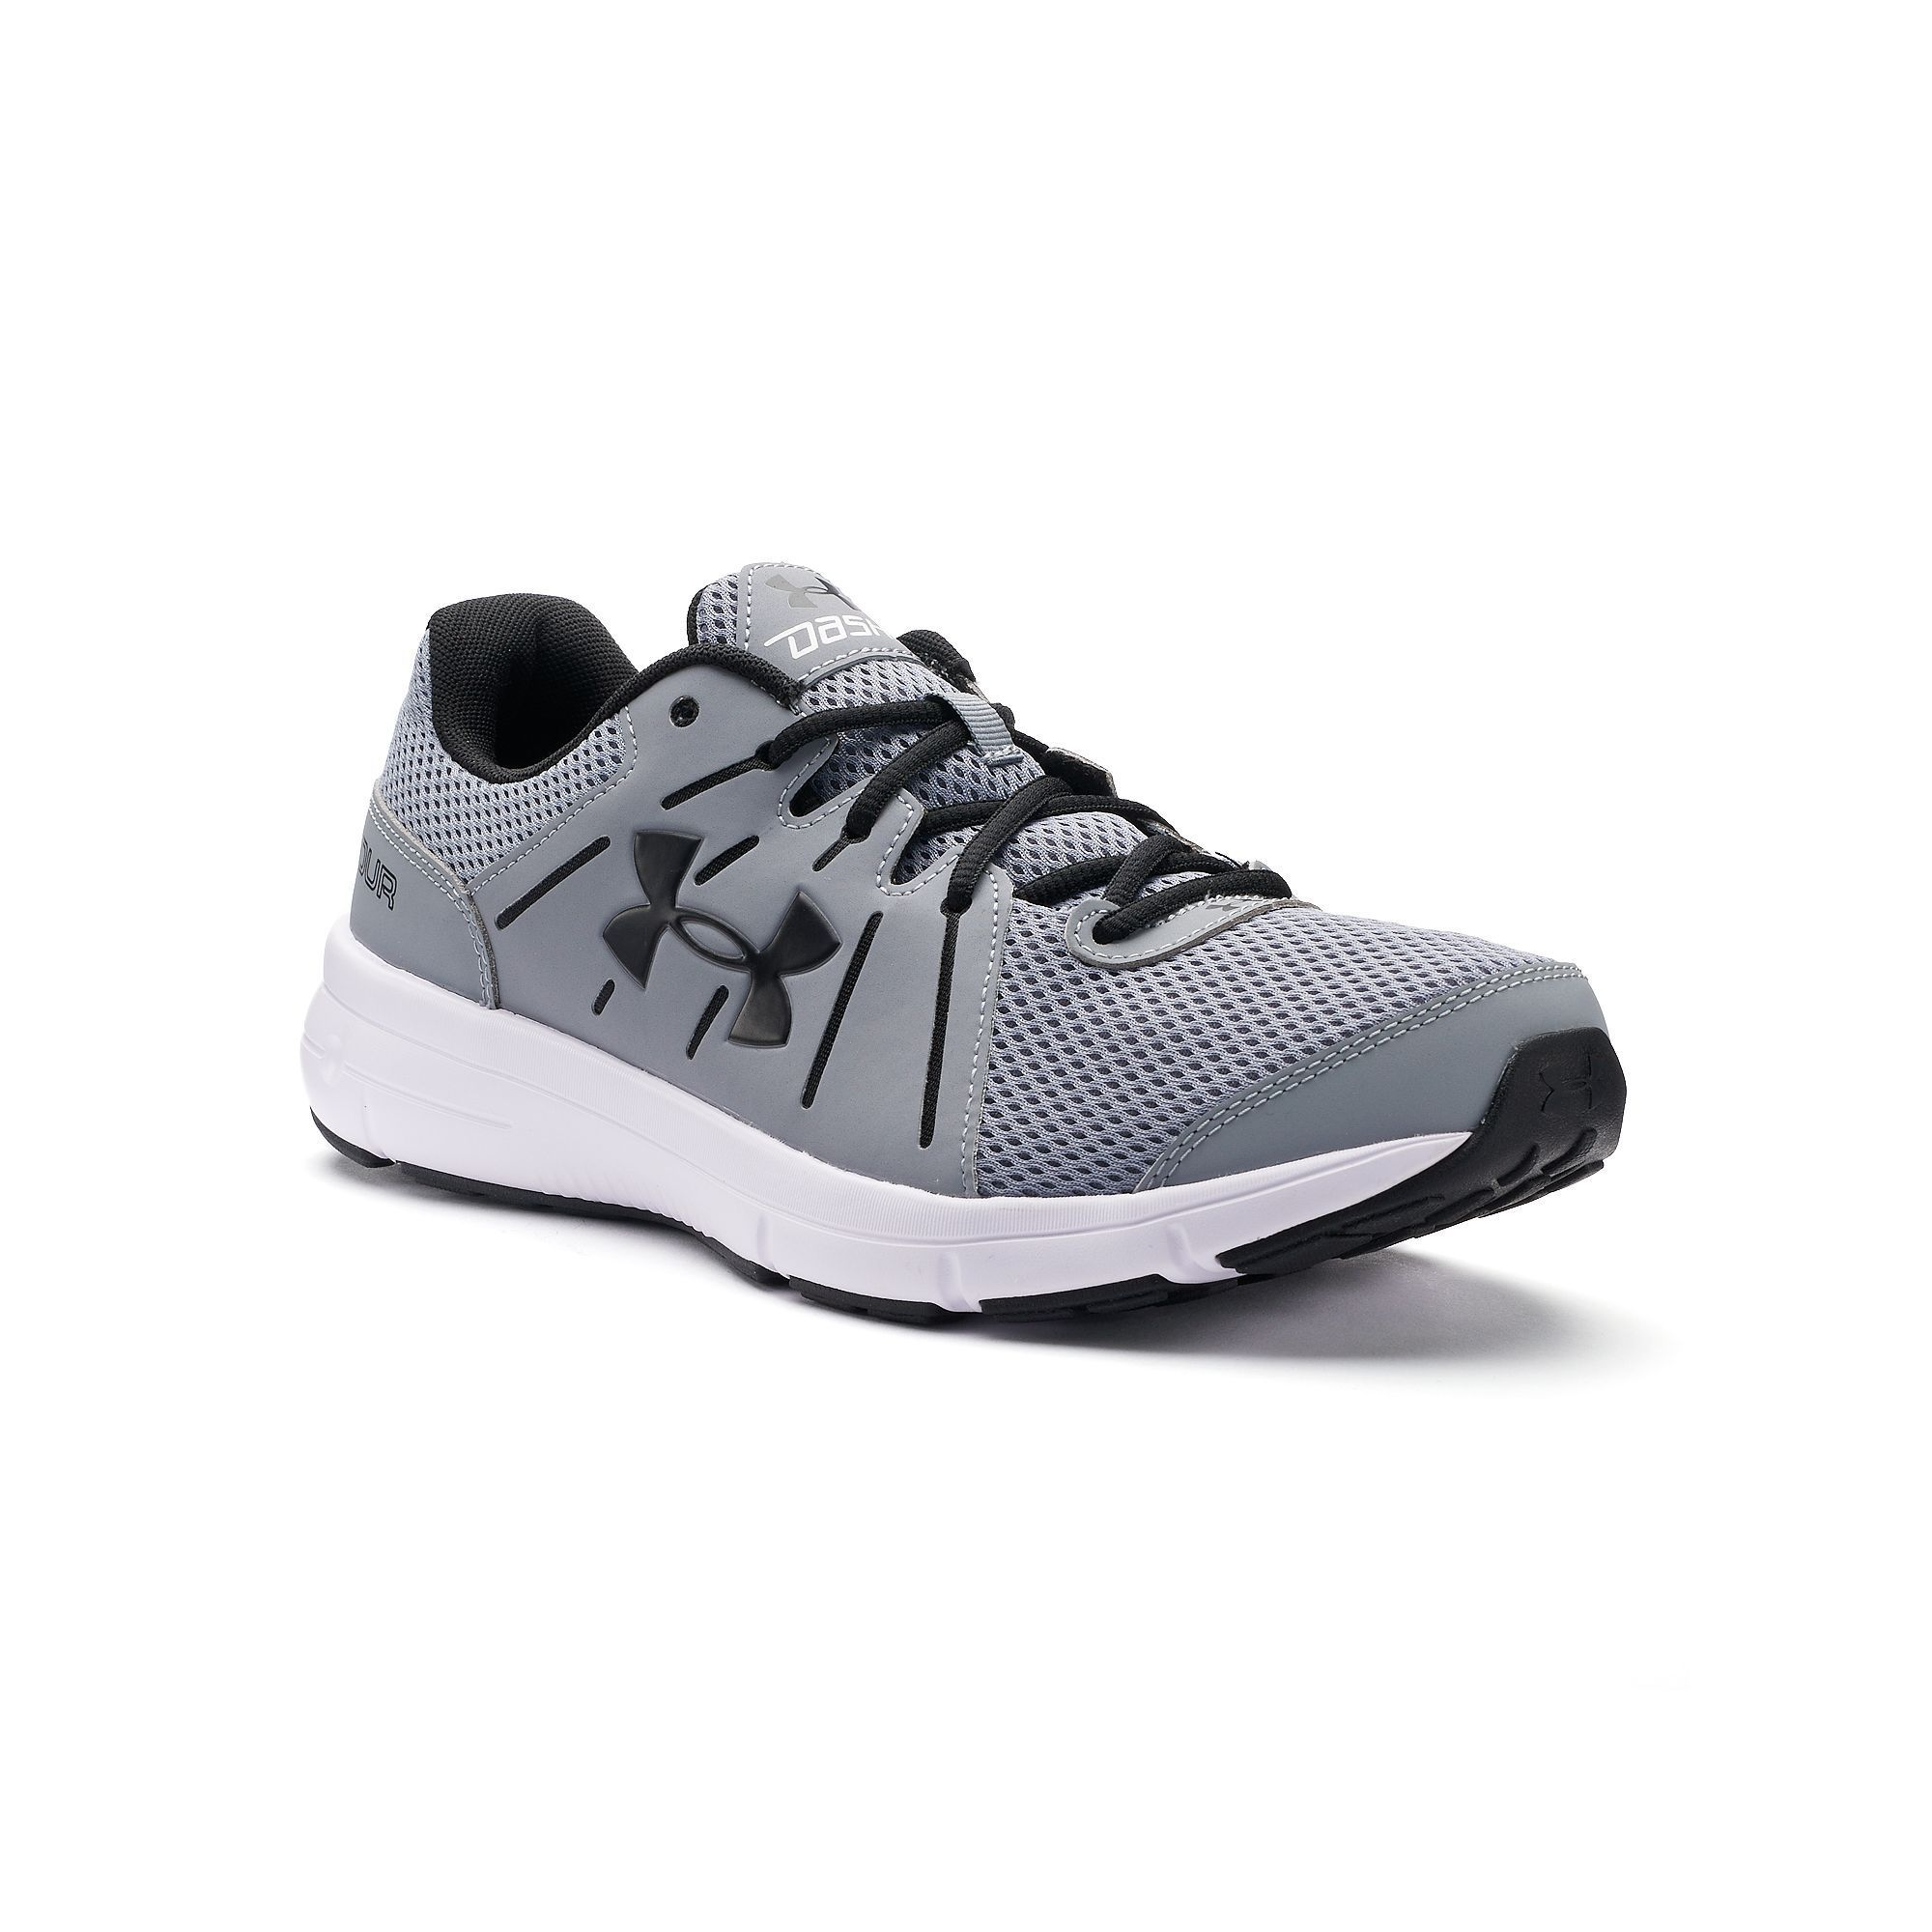 e30b6c4f7 Under Armour Dash RN 2 Men's Running Shoes | Products | Running ...